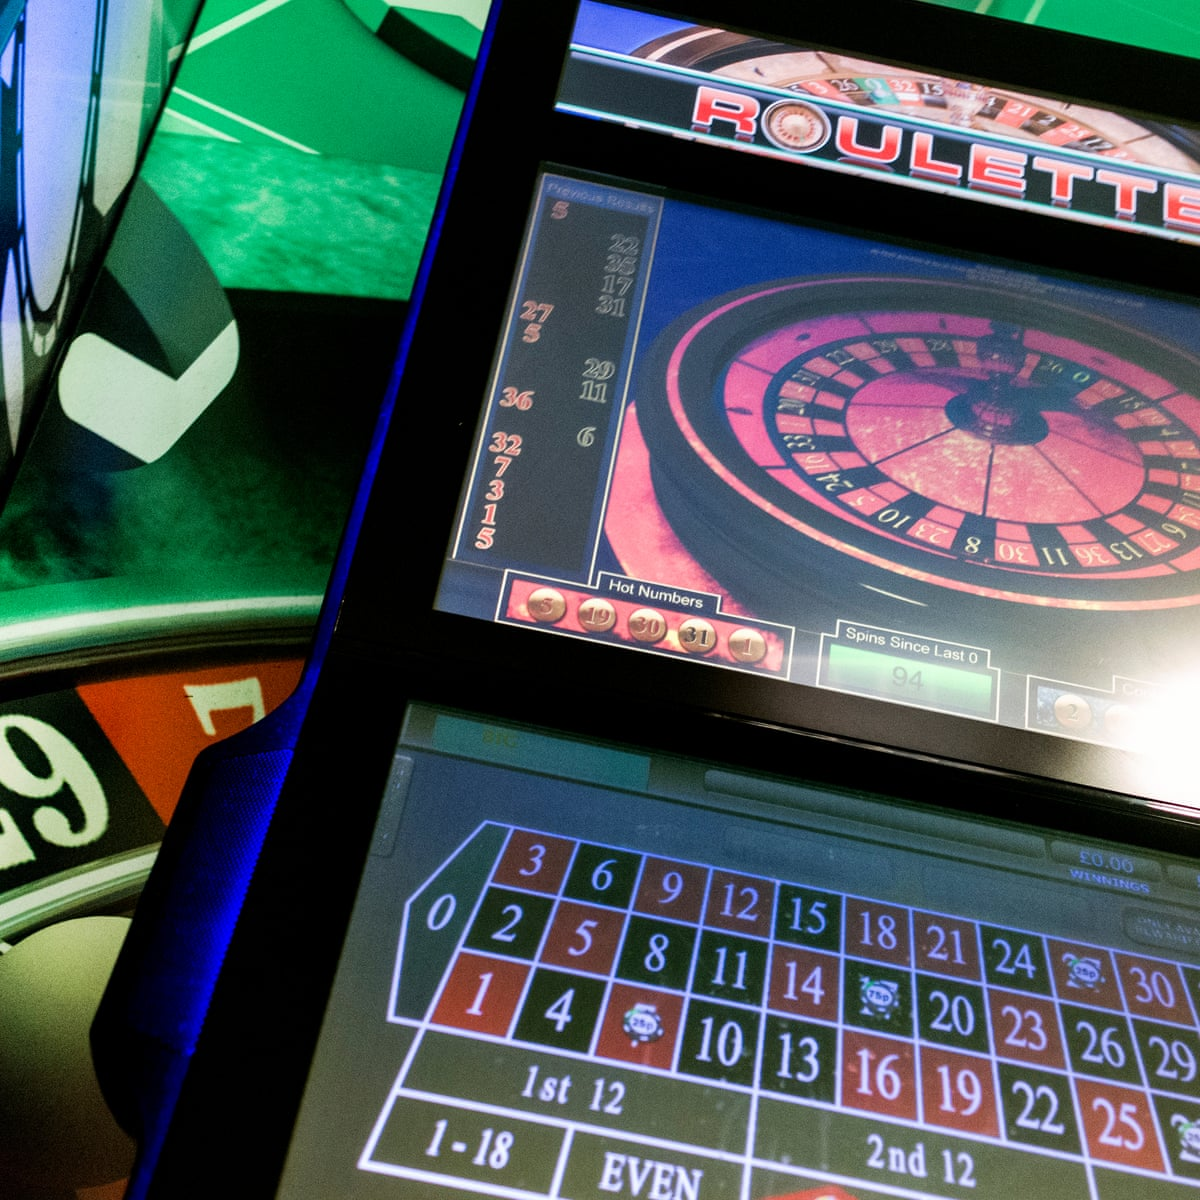 fixed odds betting terminals rigged stock